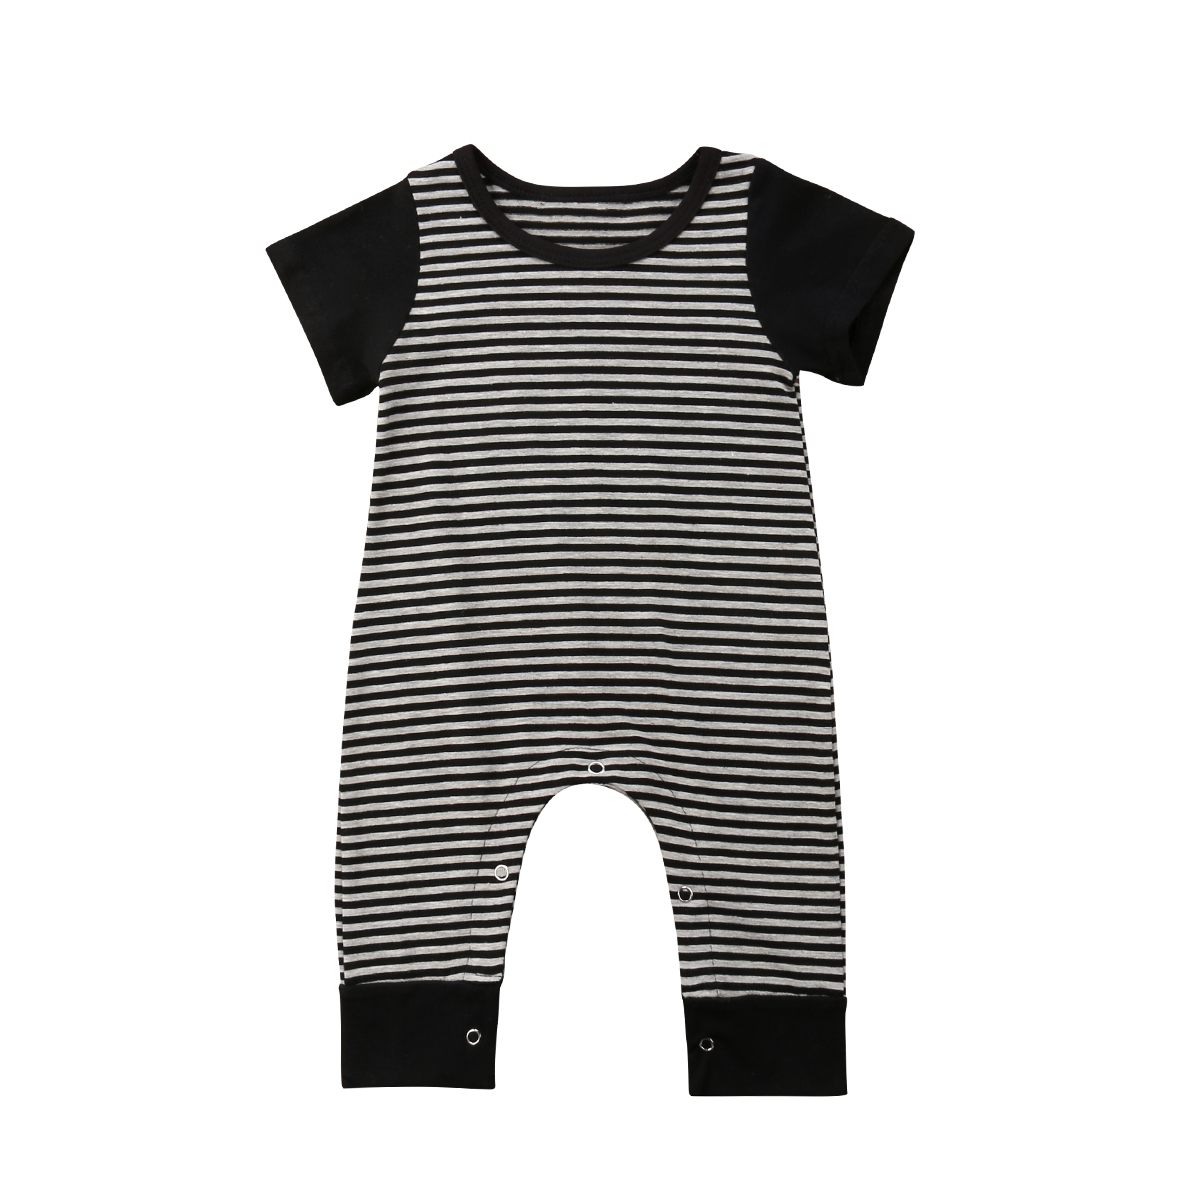 Newborn Infant Baby Boy Girl Striped Romper Jumpsuit Clothes Outfits 0-24M